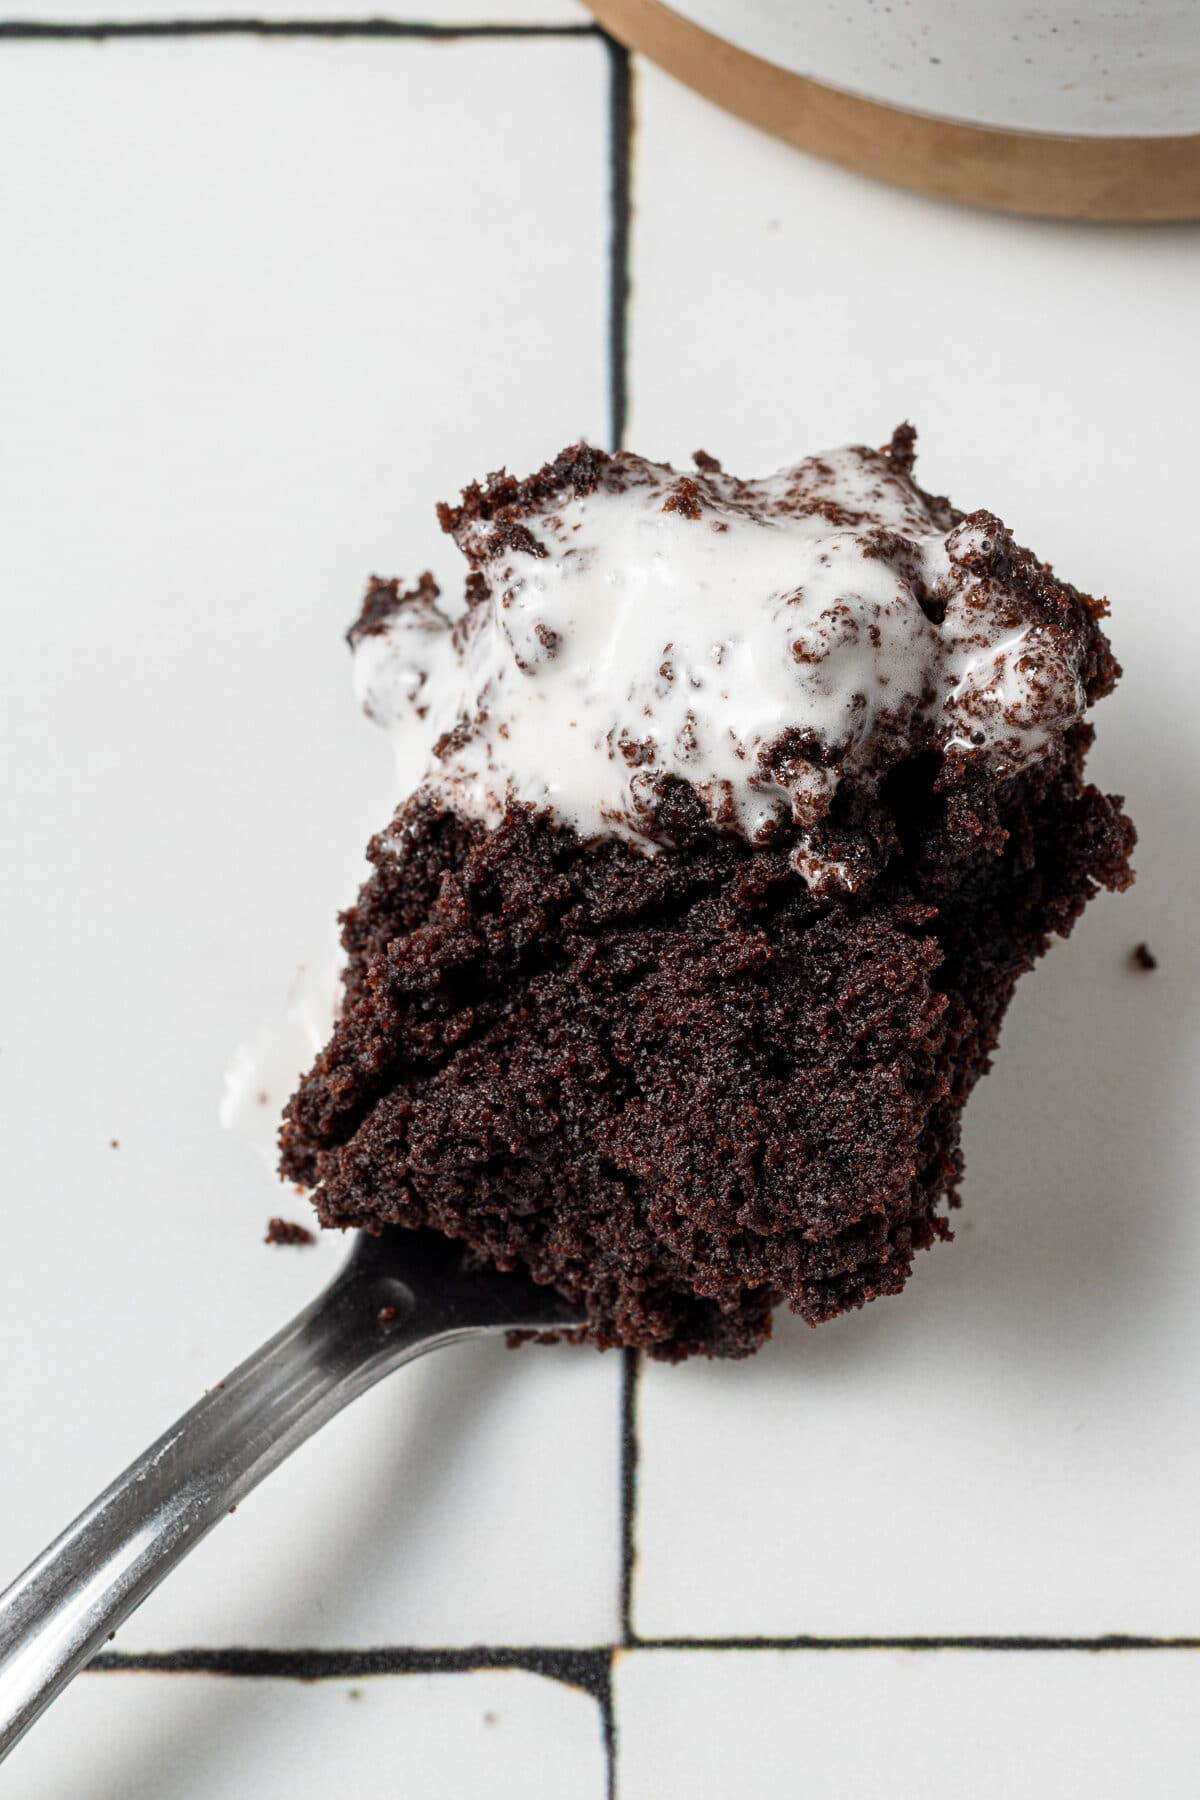 a spoon with a chocolate vegan mug cake on it with whipped cream melting on top